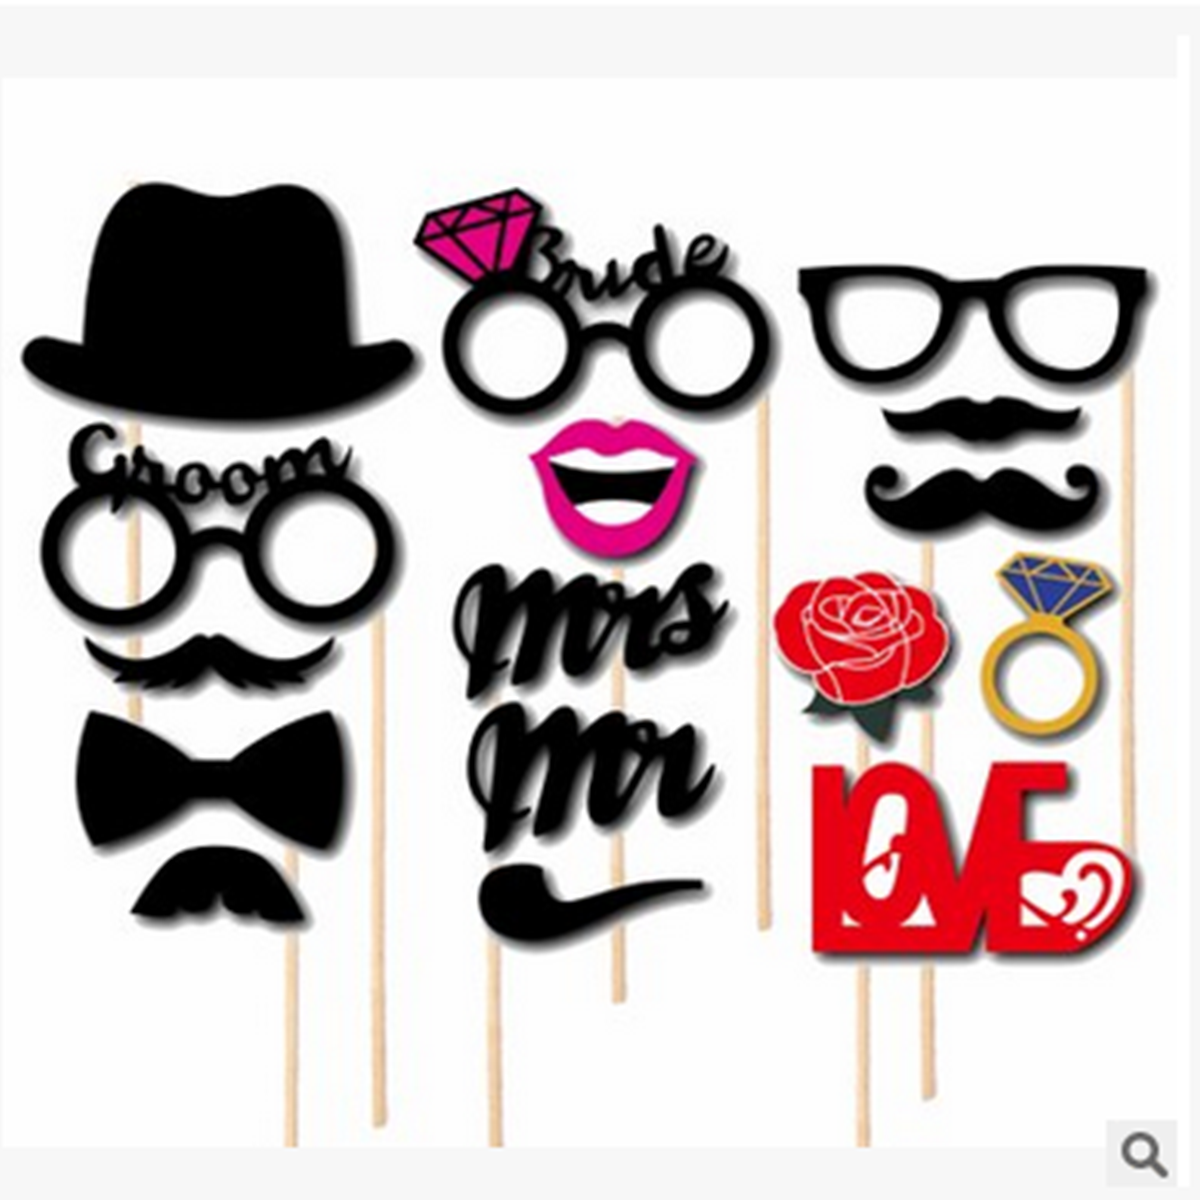 76Pcs Photo Mustache Stick Booth Wedding Prop Welcome Mask Props Wedding Party Decoration